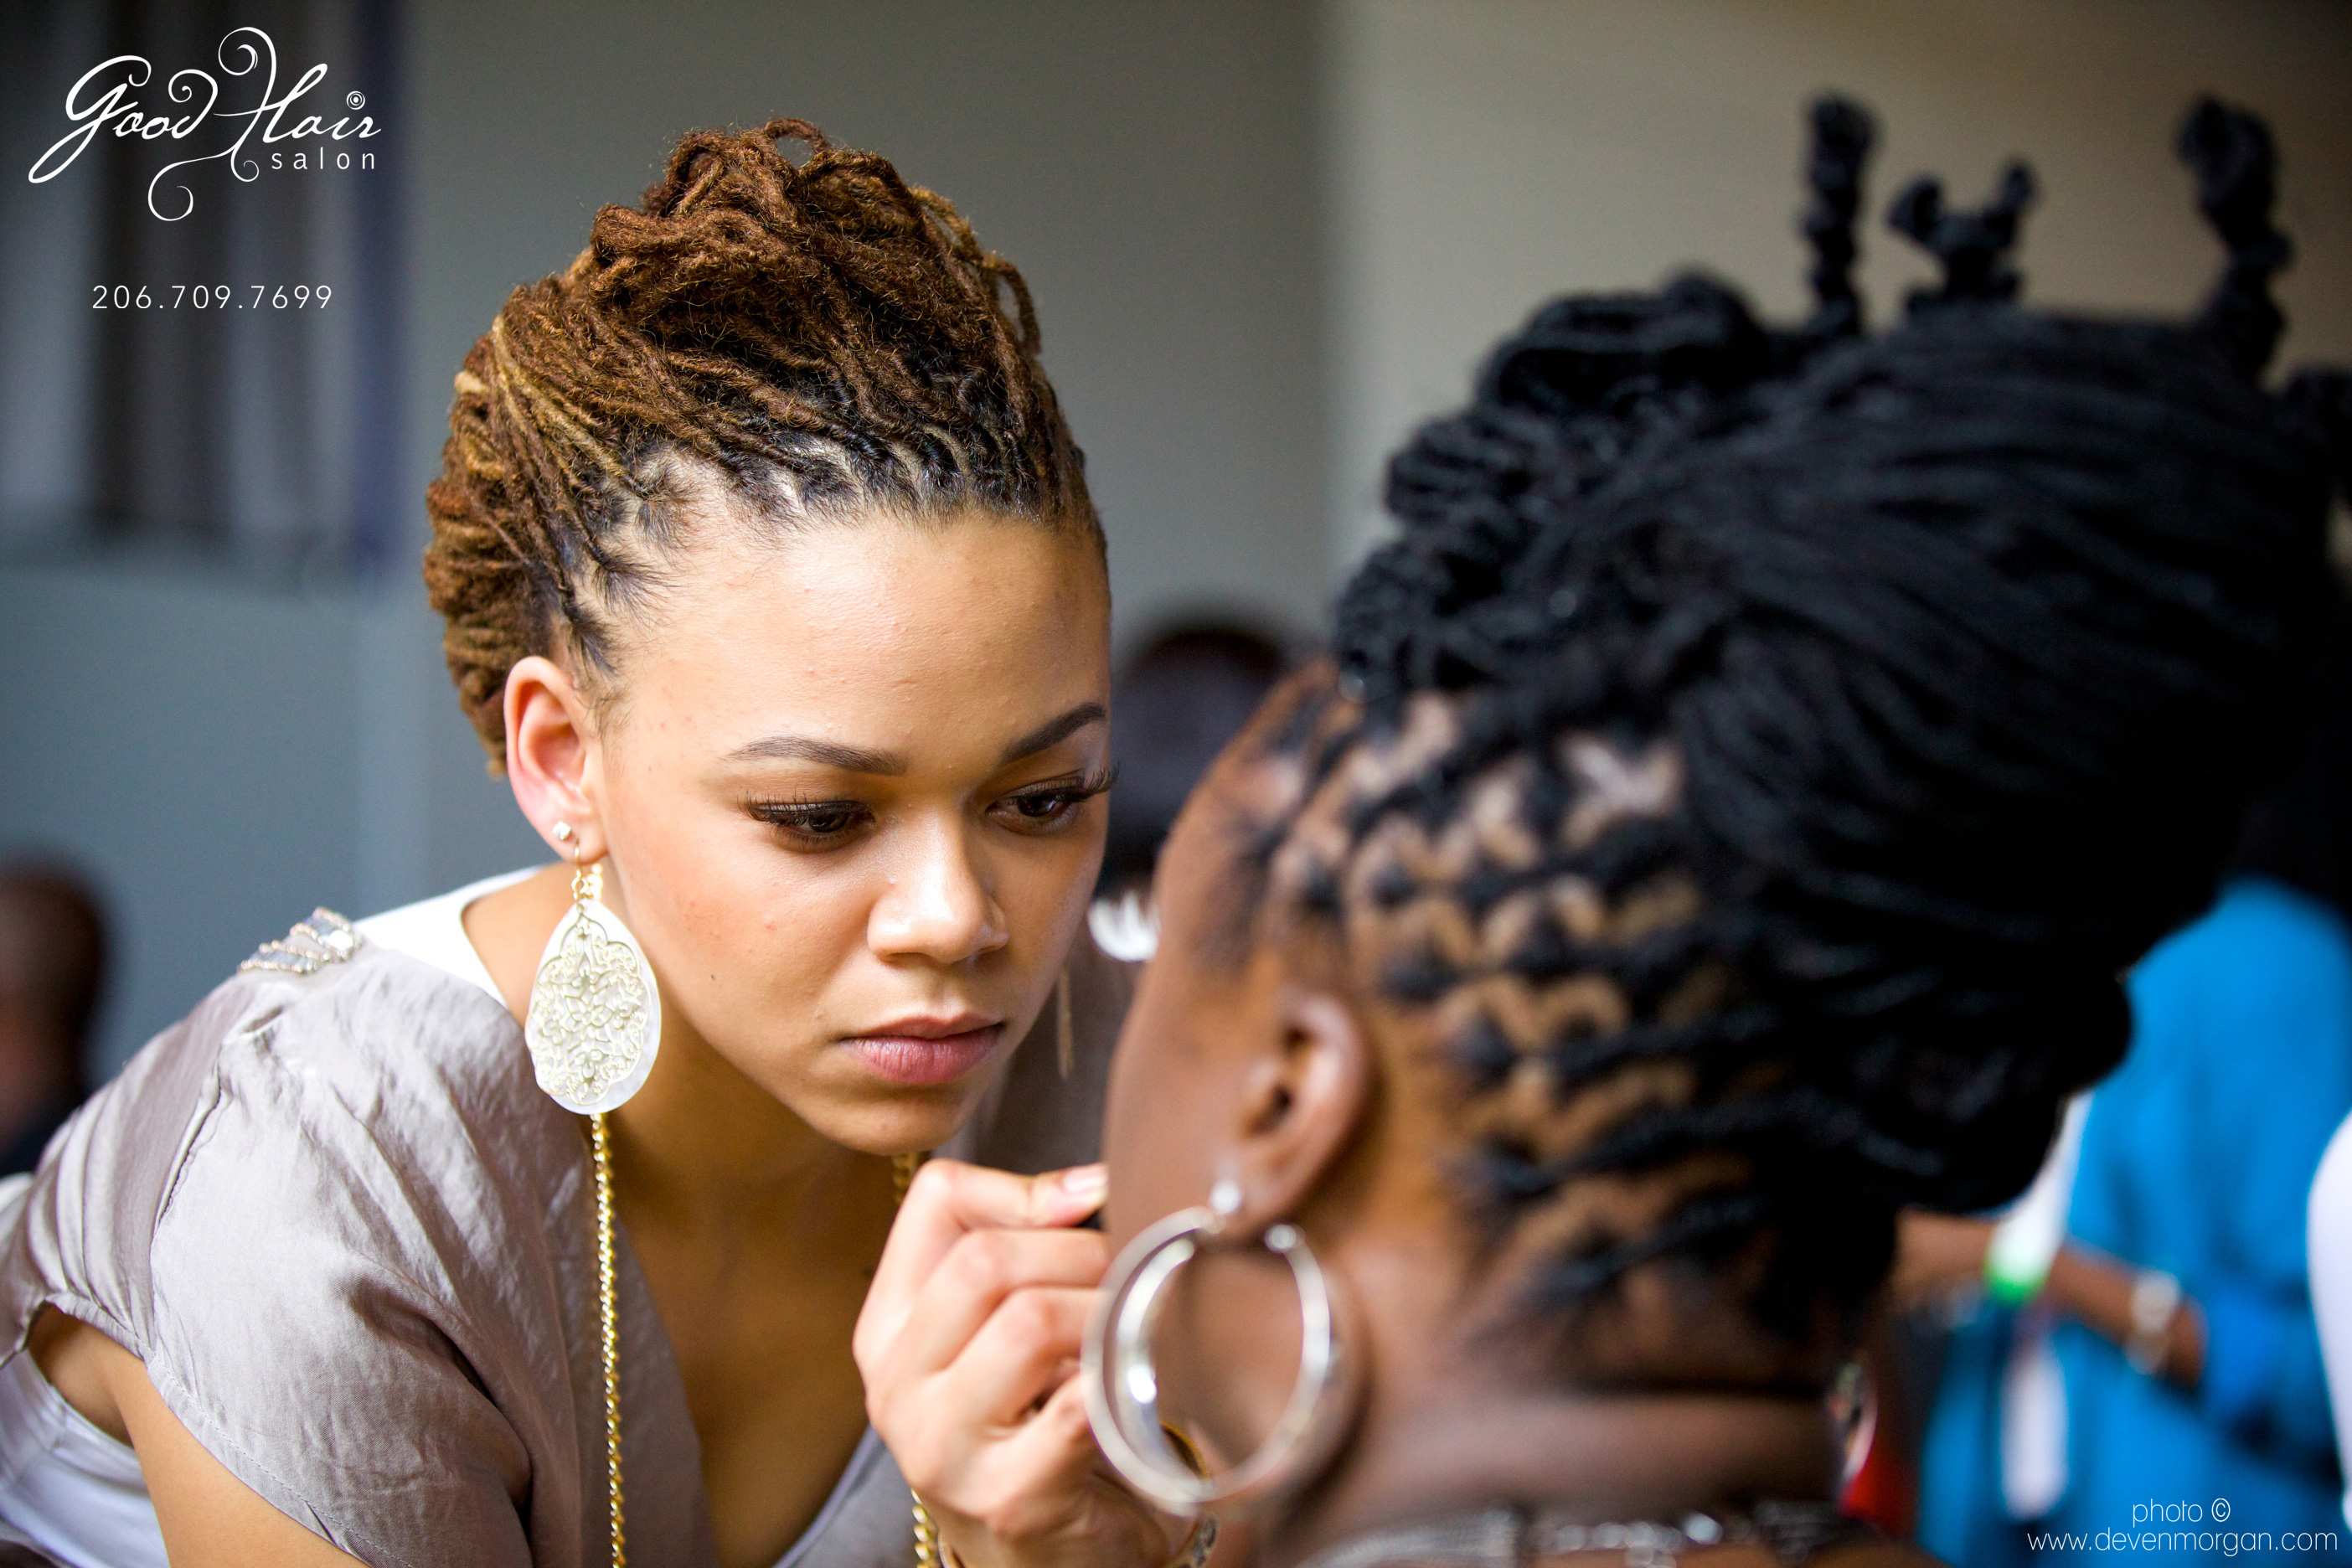 good hair salon is the leading natural hair care salon in seattle ...